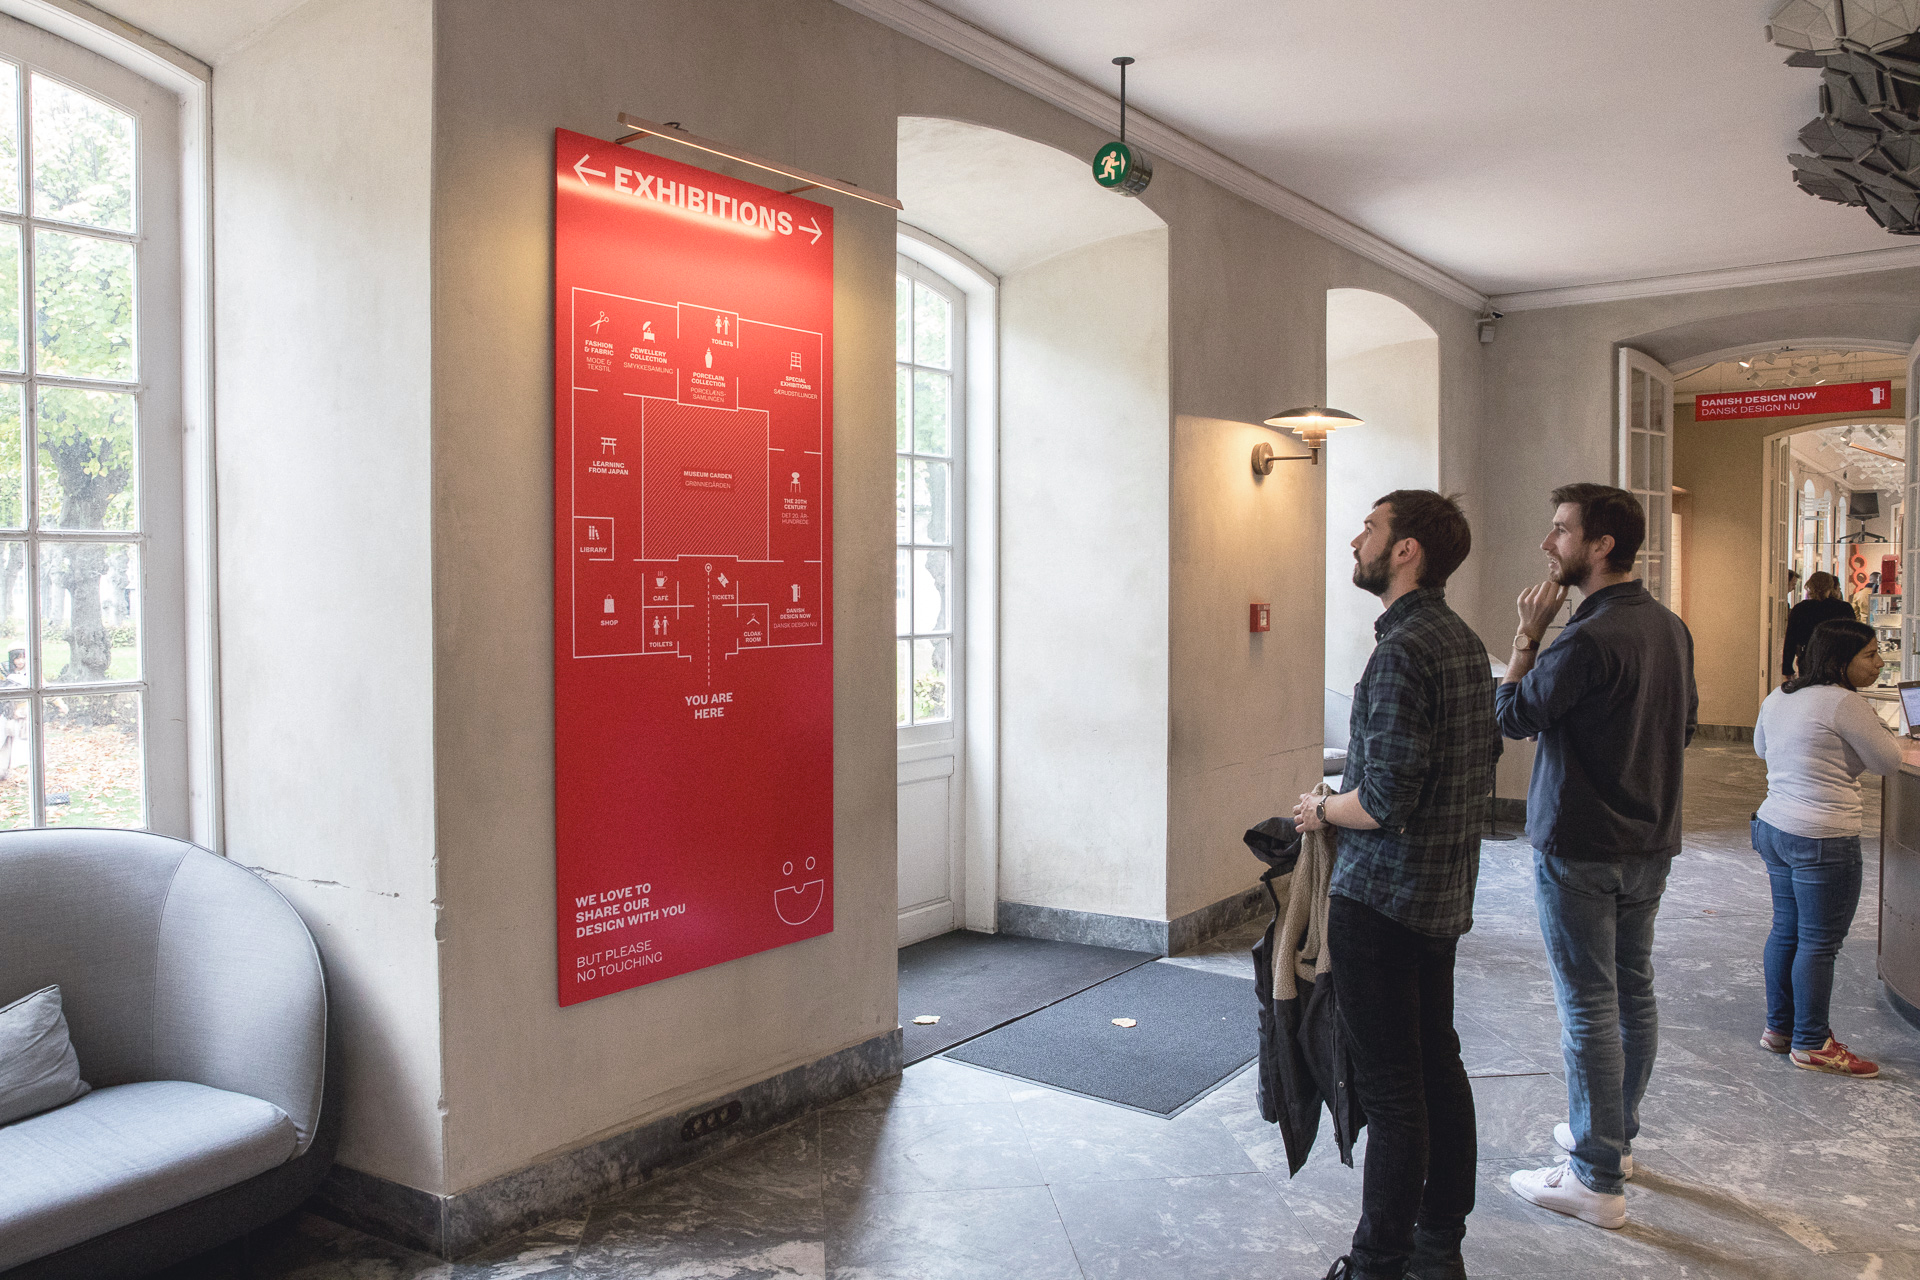 Interior view of visitors looking at a map of the museum layout as part of the wayfinding strategy for Designmusem Danmark